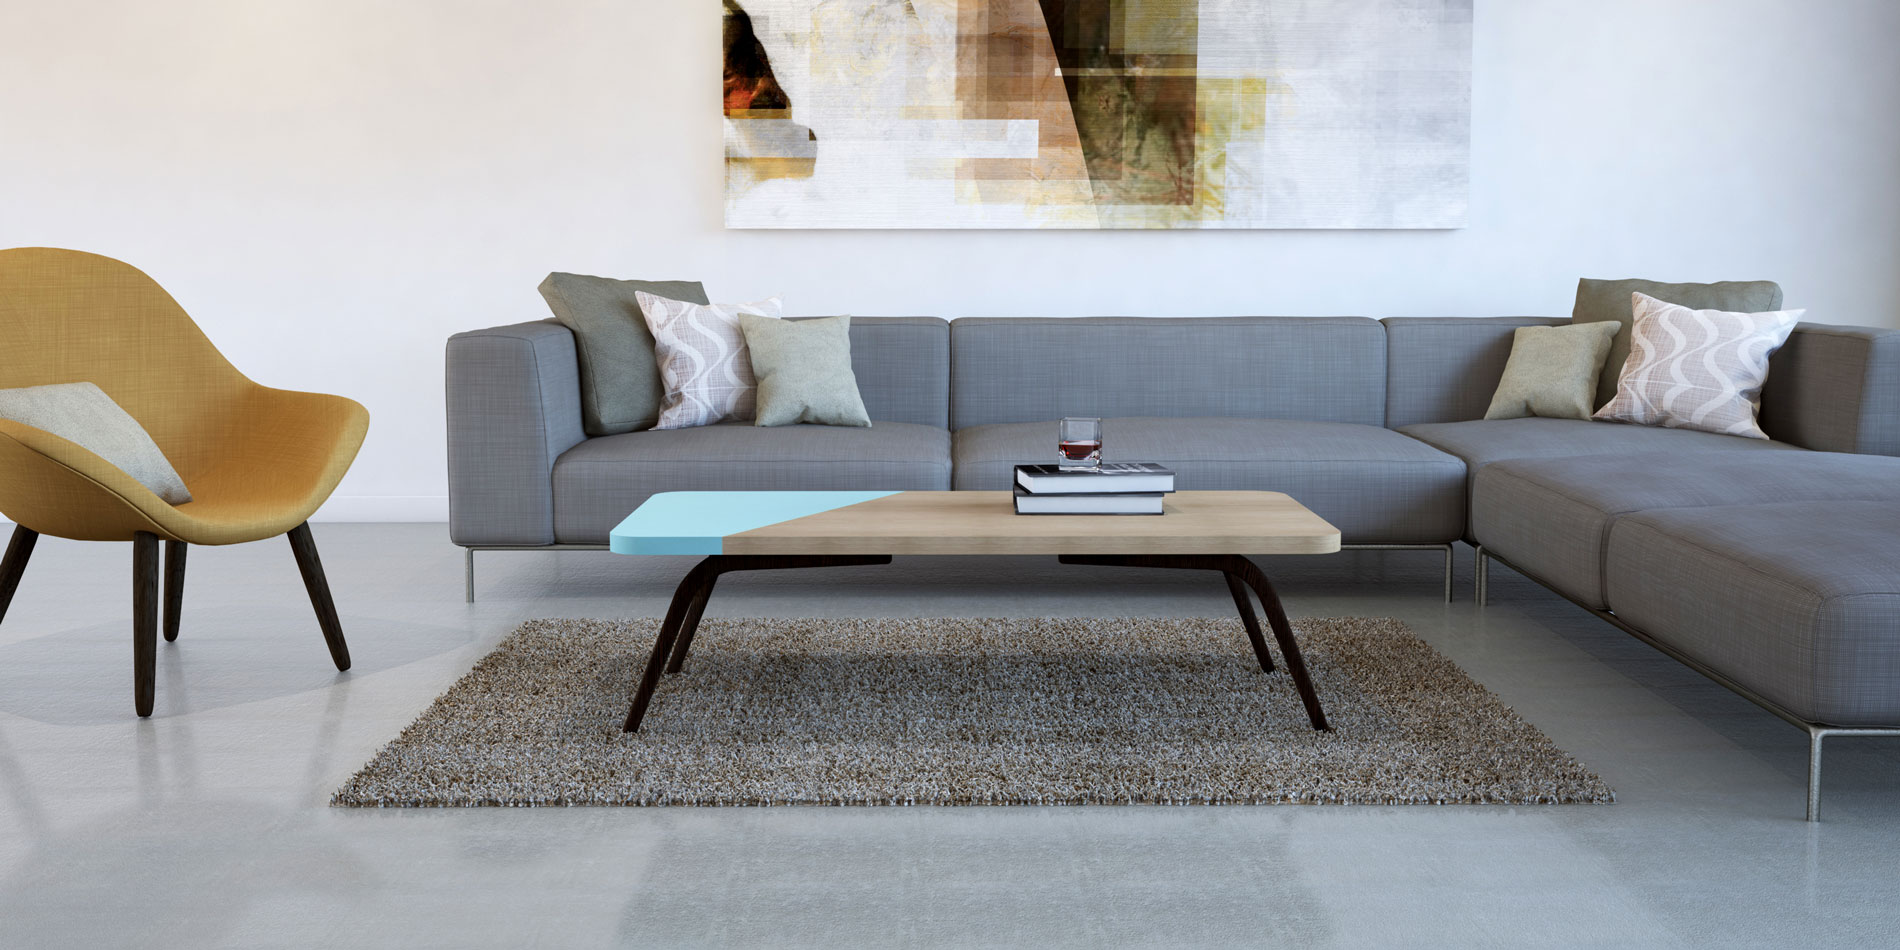 _3_elements_dipped_ash_coffee_table.jpg